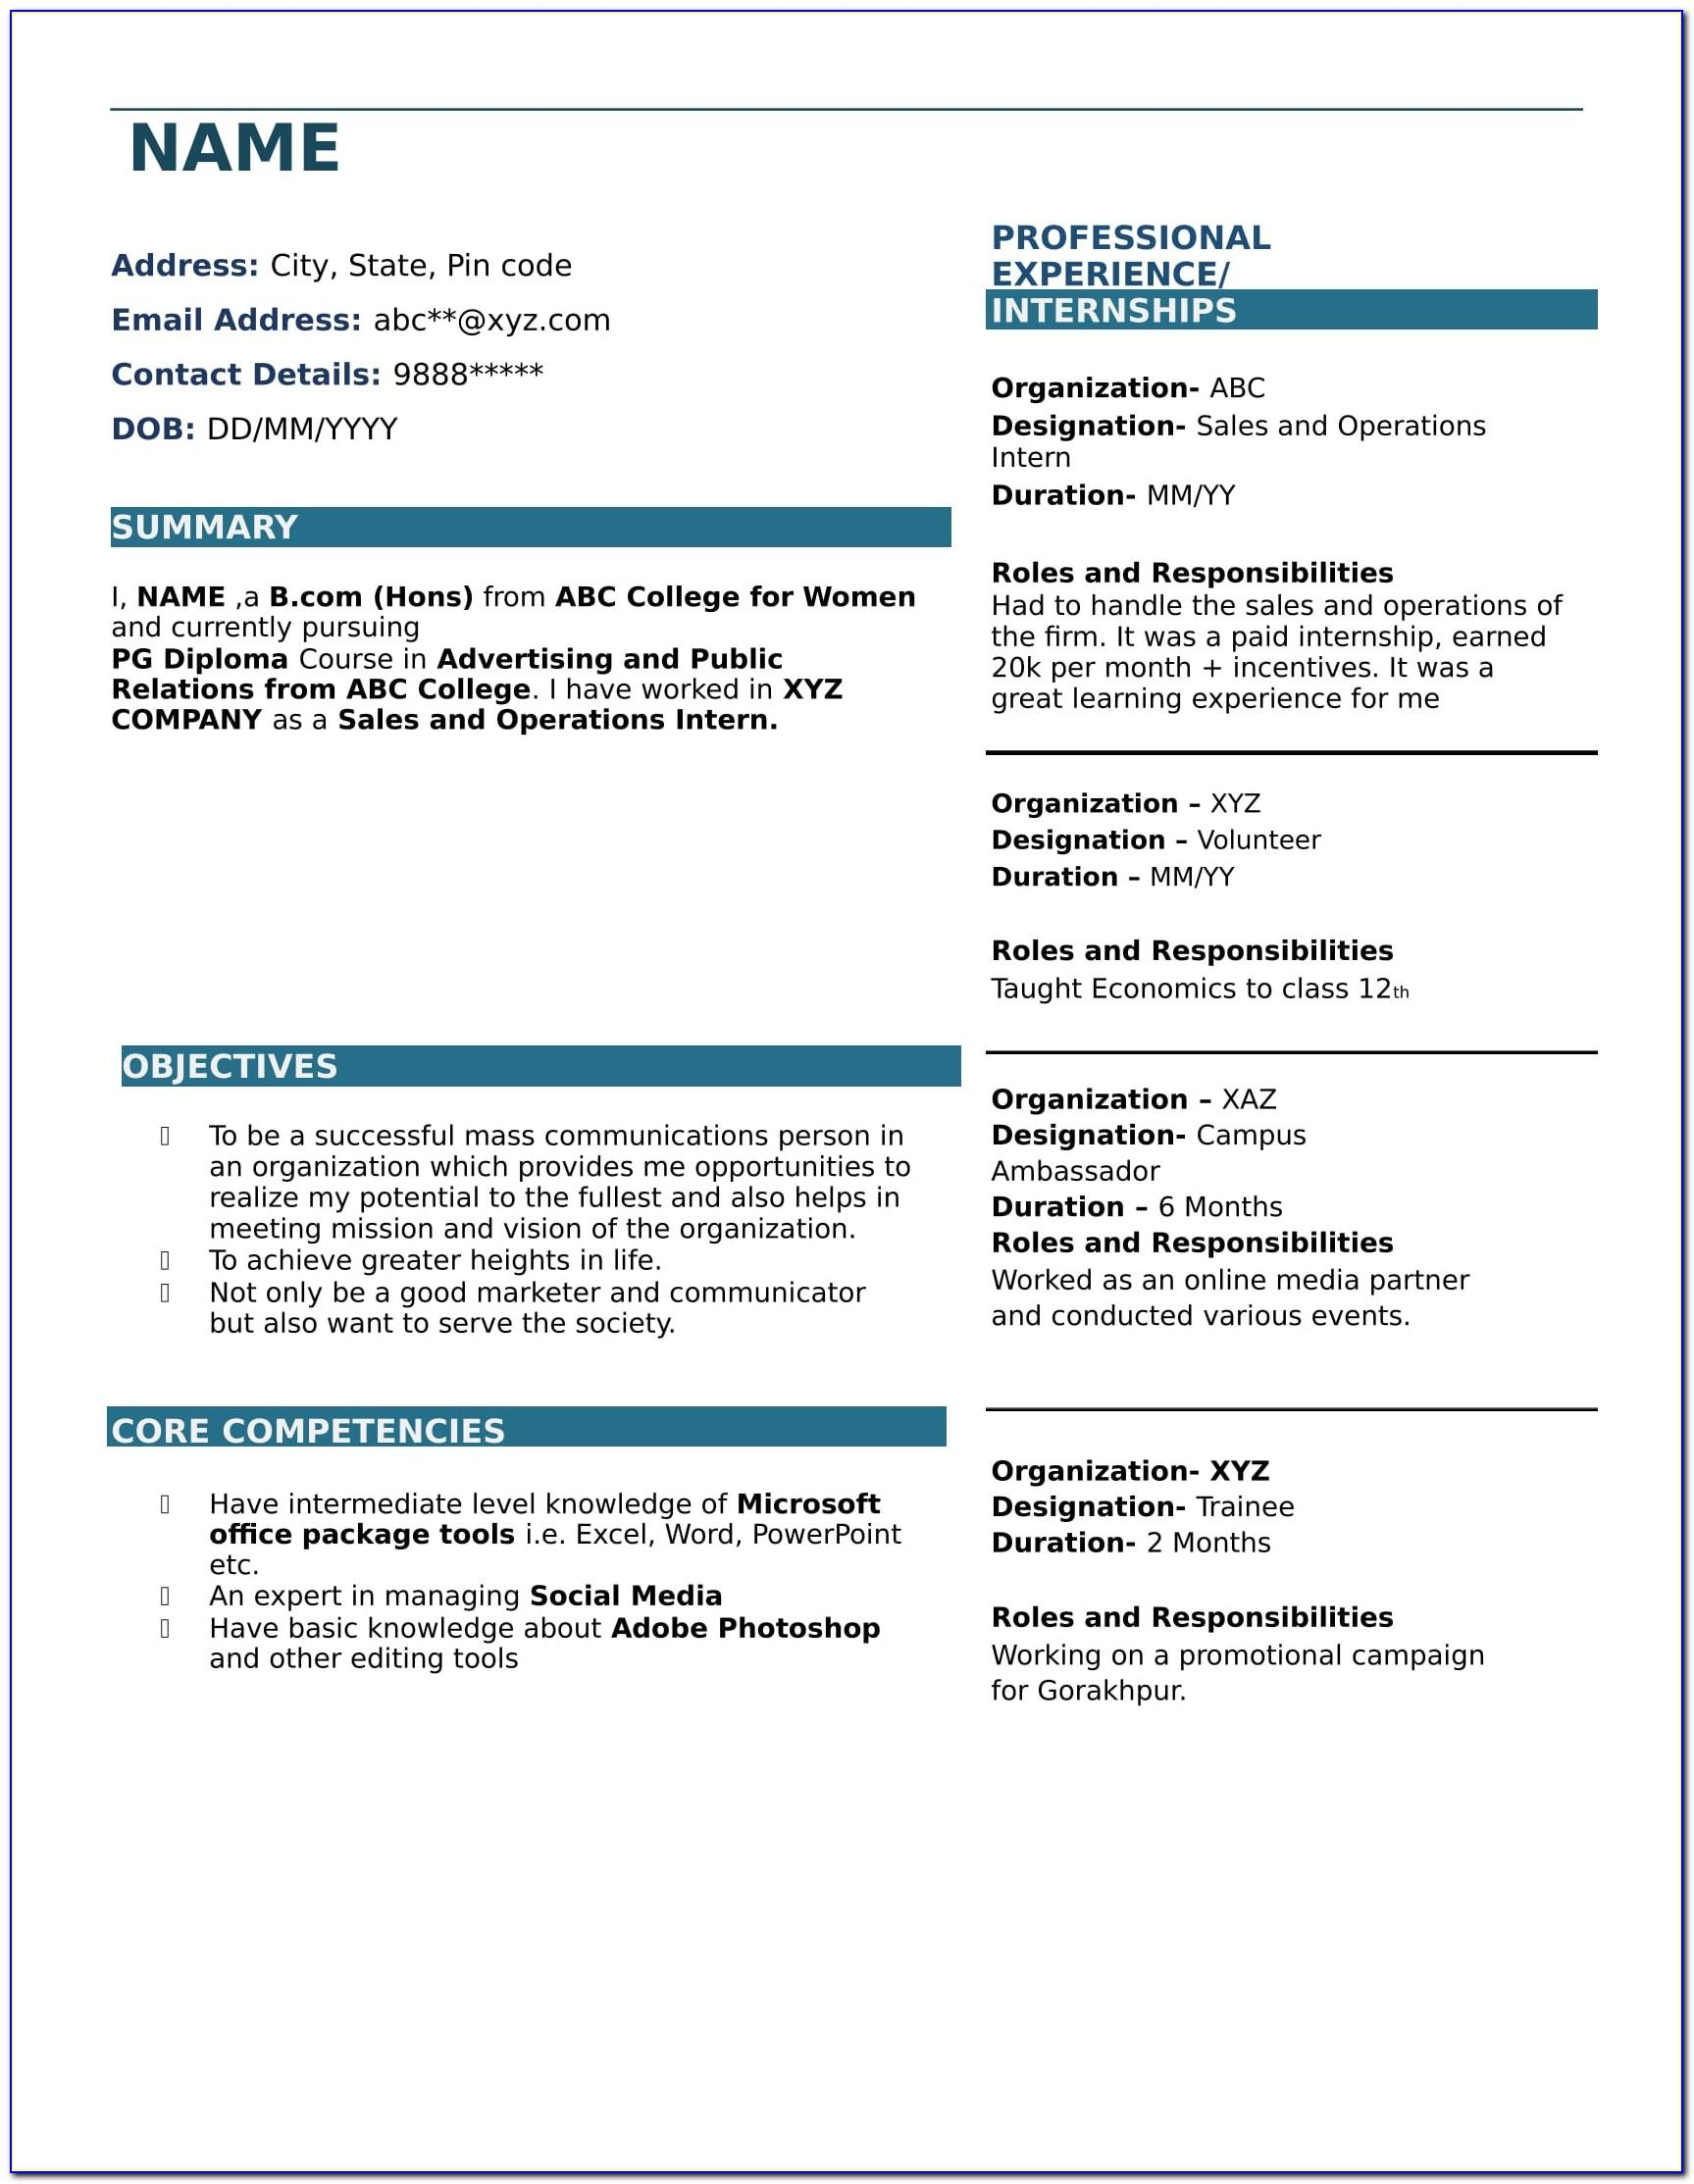 Resume Format For Bcom Students With No Experience Download